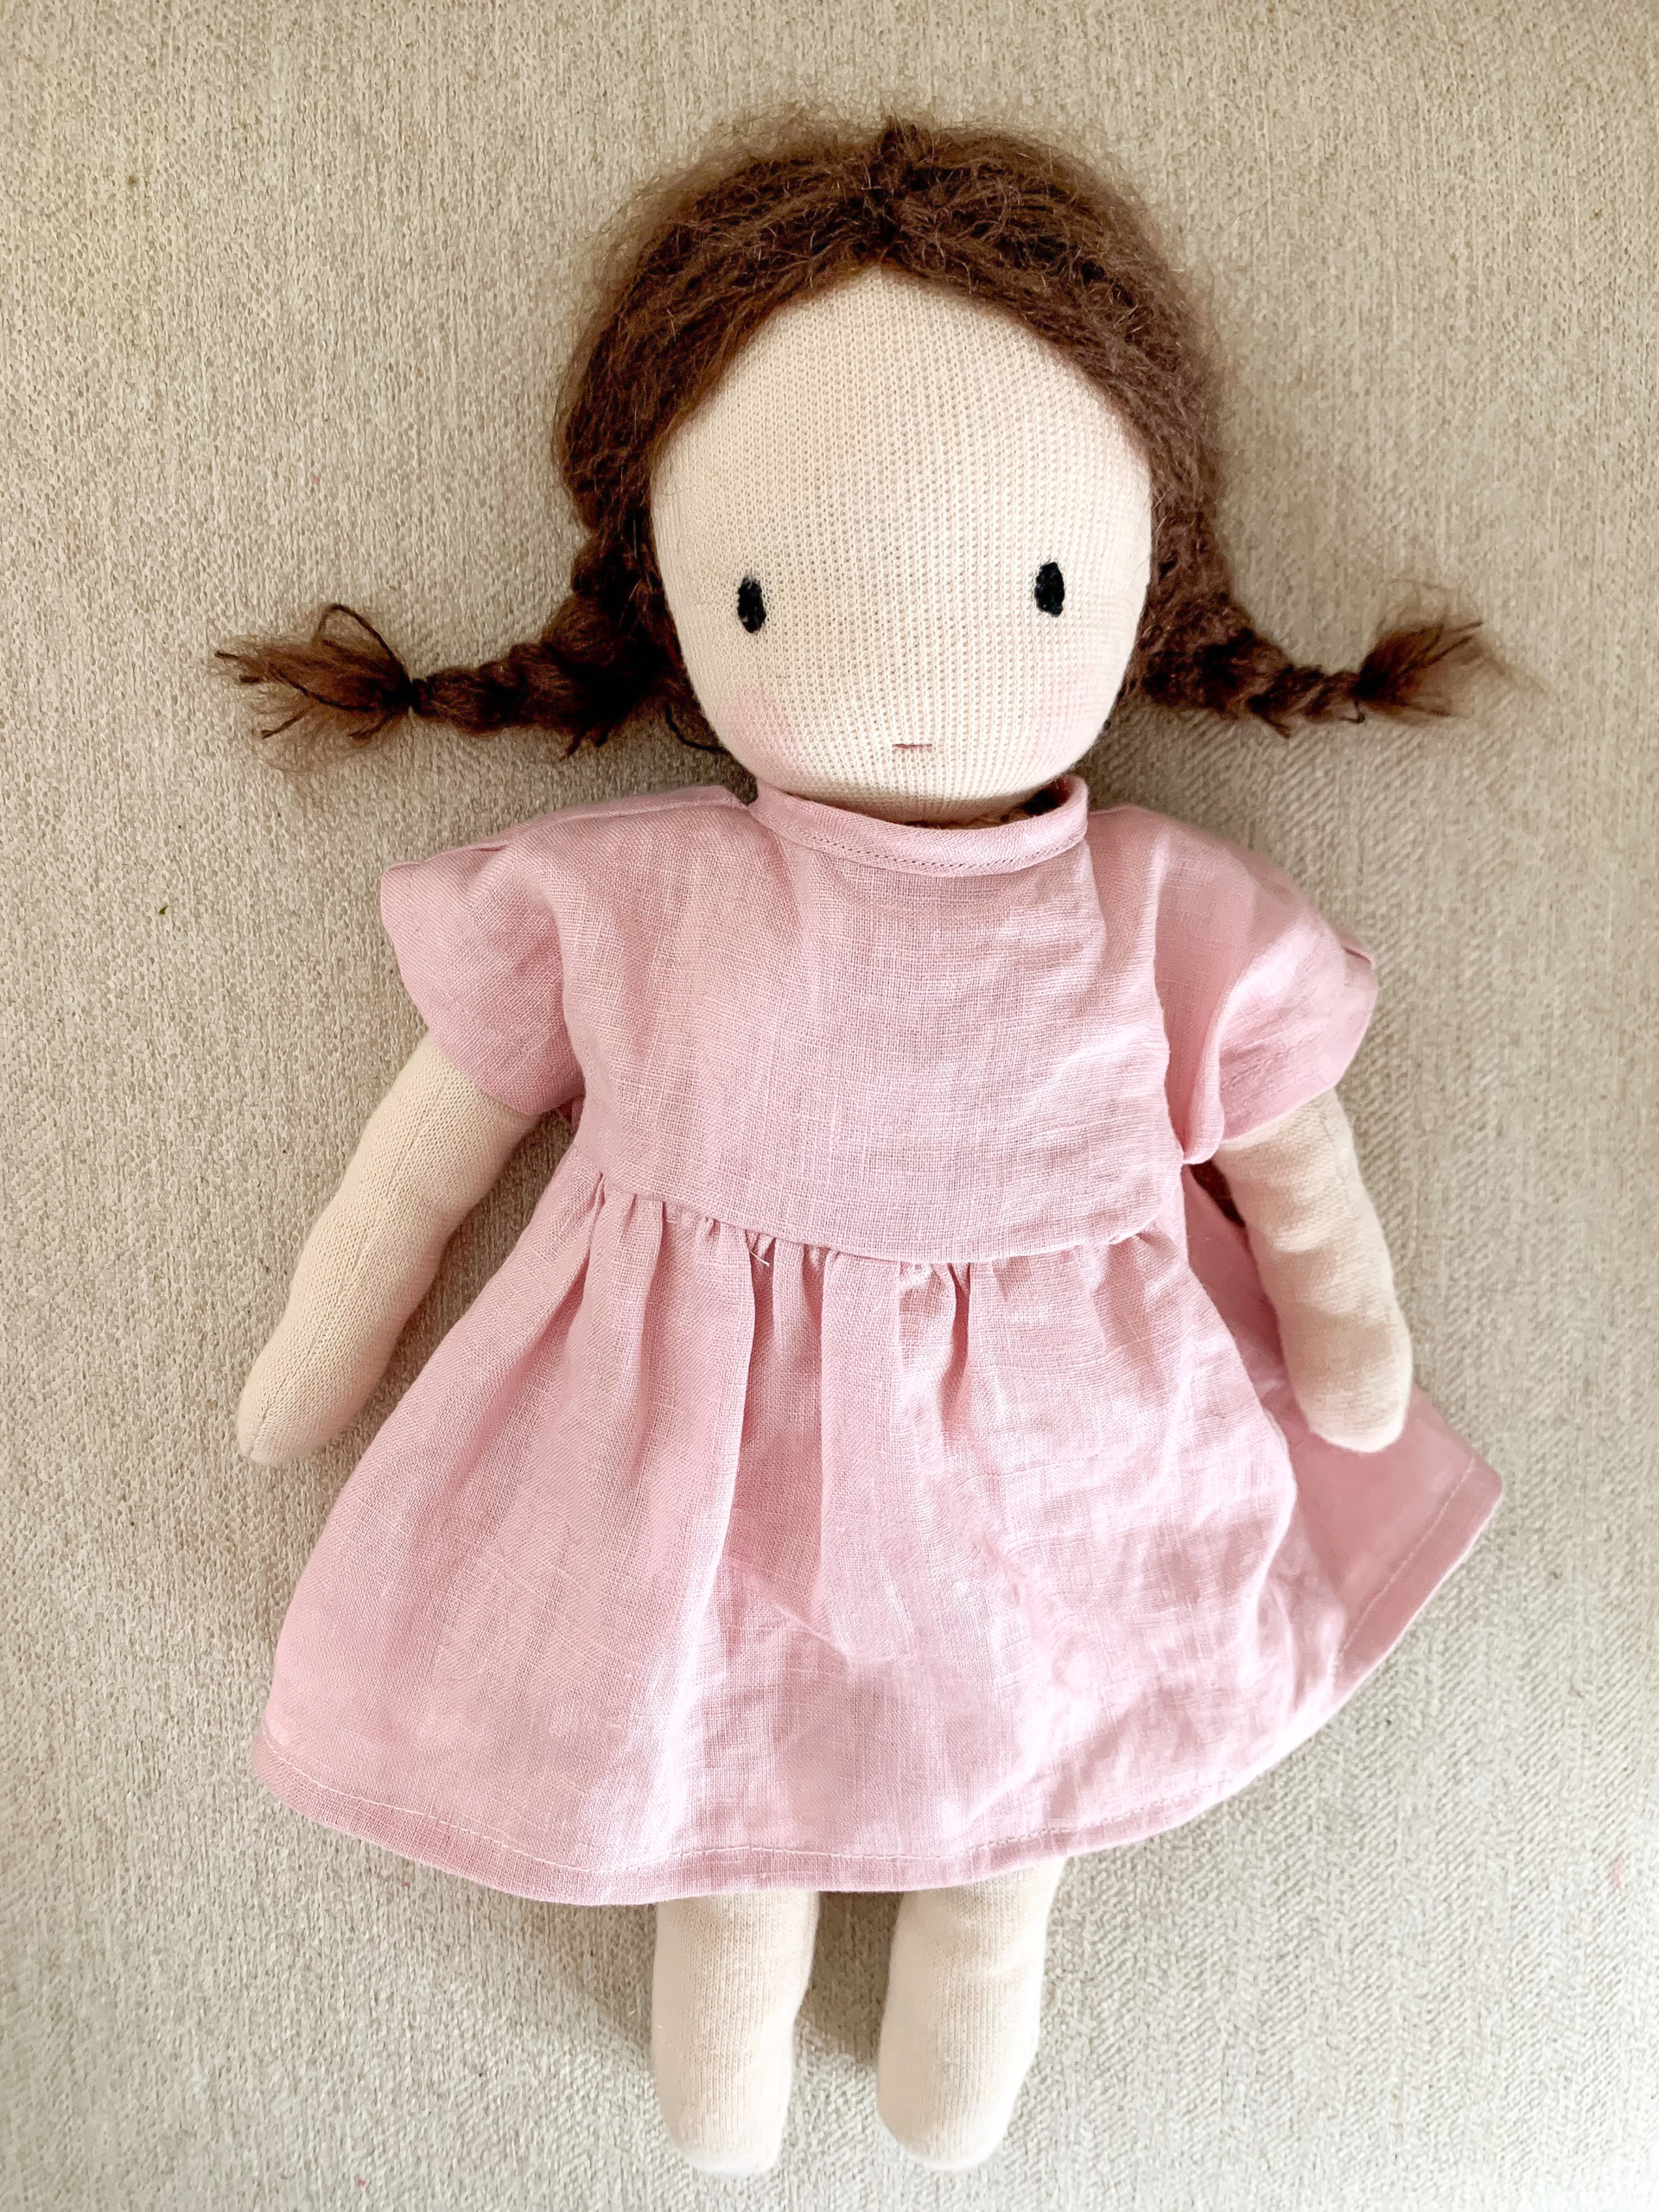 A waldorf-inspired handsewn doll wearing a pink linen dress. The doll has brown braids, pink cheeks, simple features, and is on a beige background.